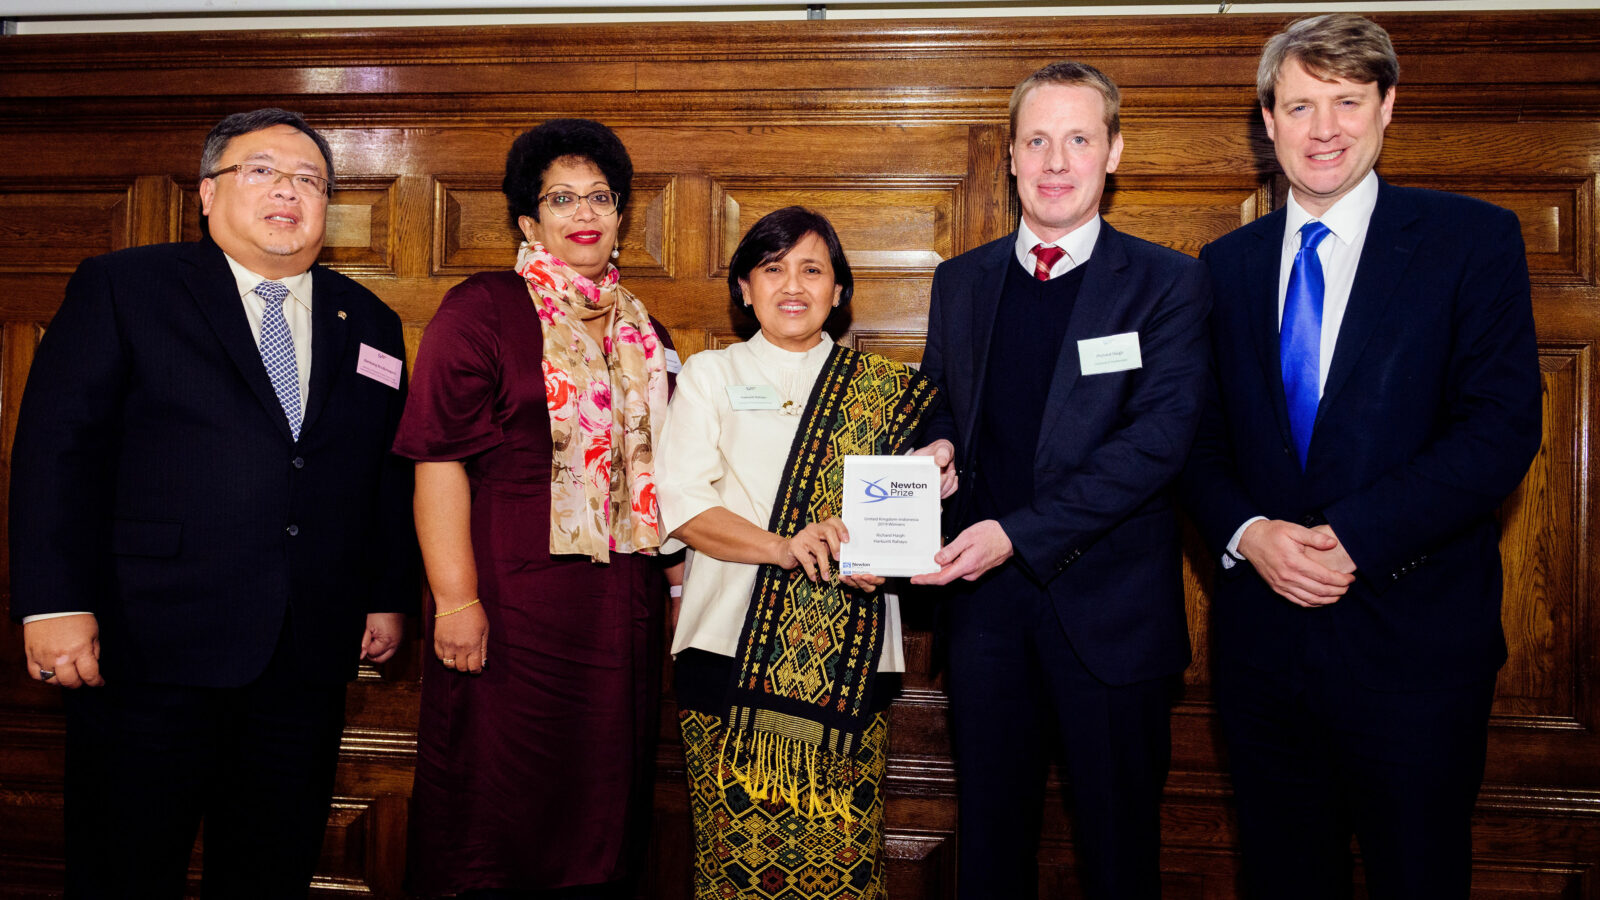 Image of Newton Prize 2019 Indonesia winners on stage at London event